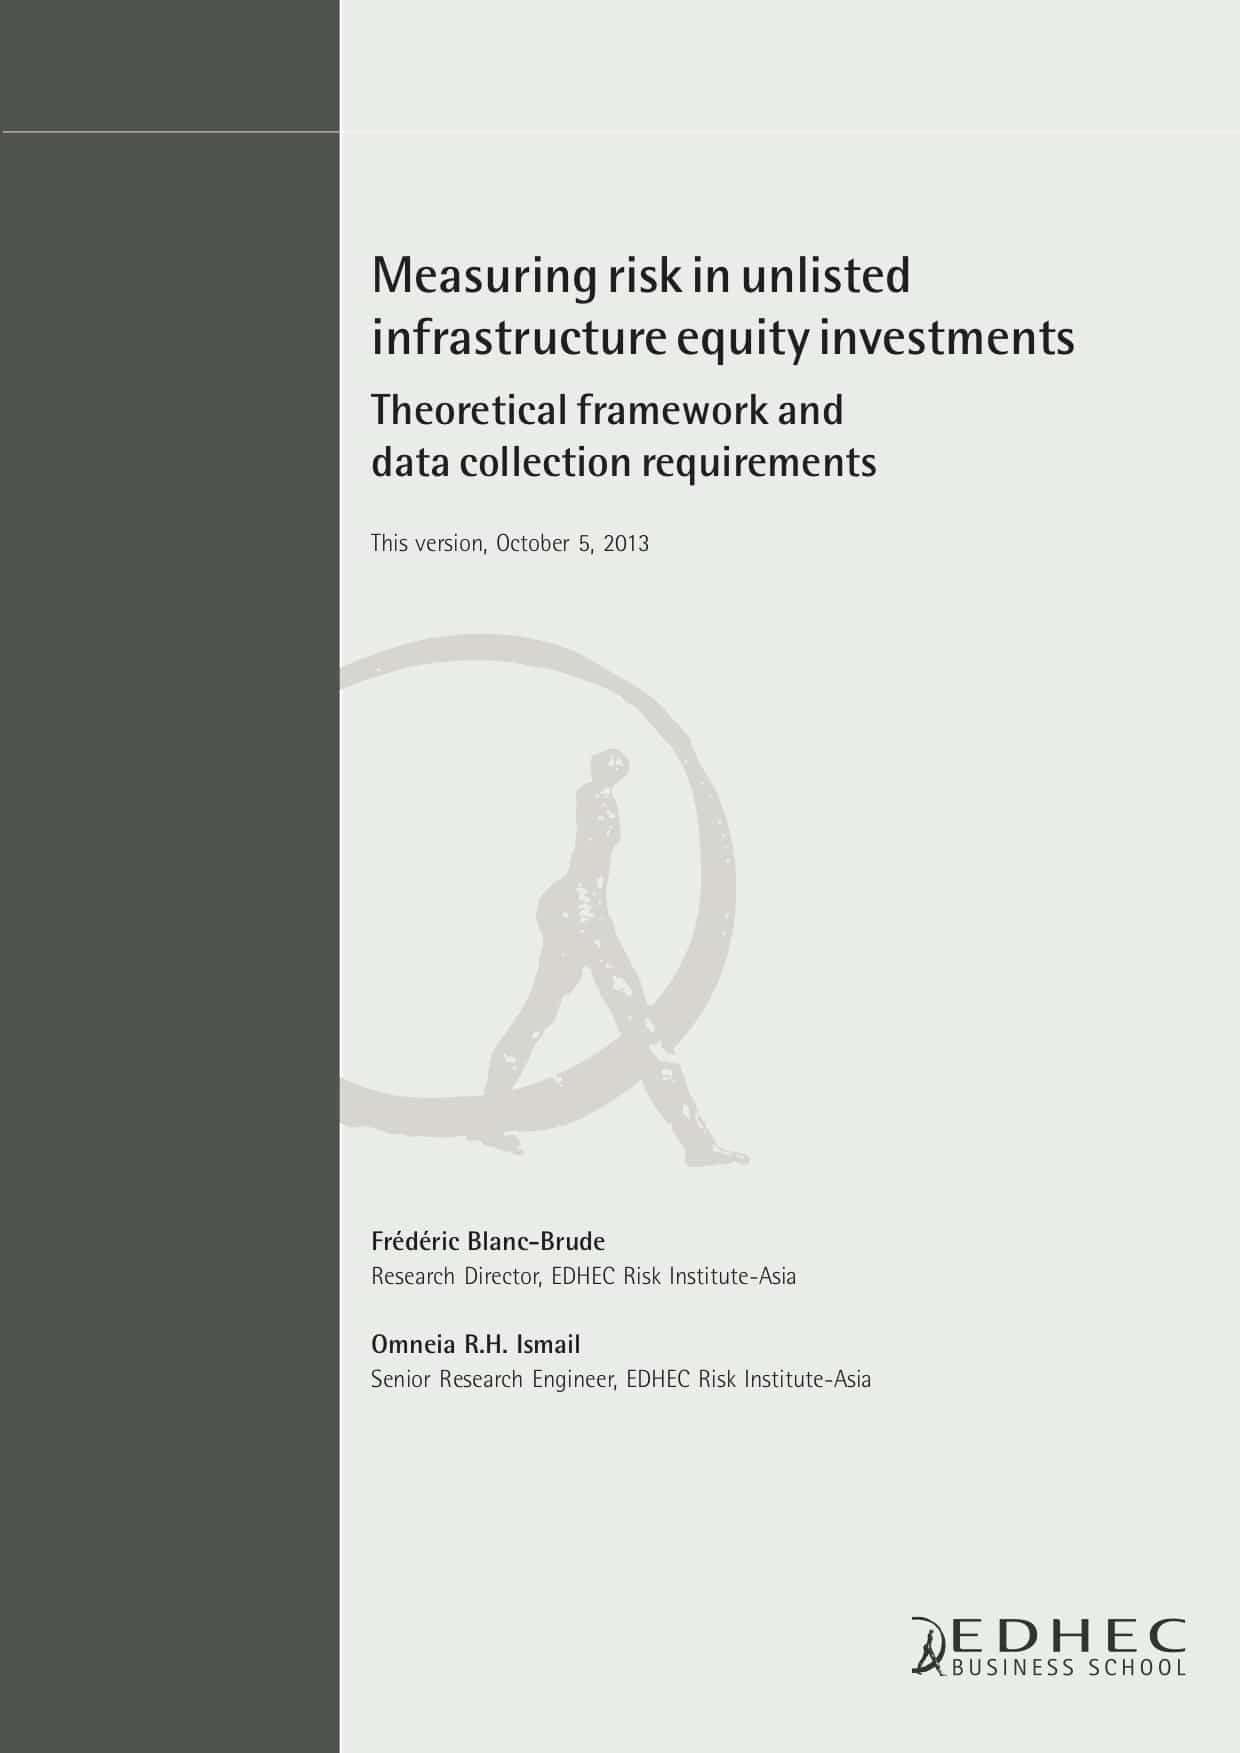 Measuring risk in unlisted infrastructure equity investment